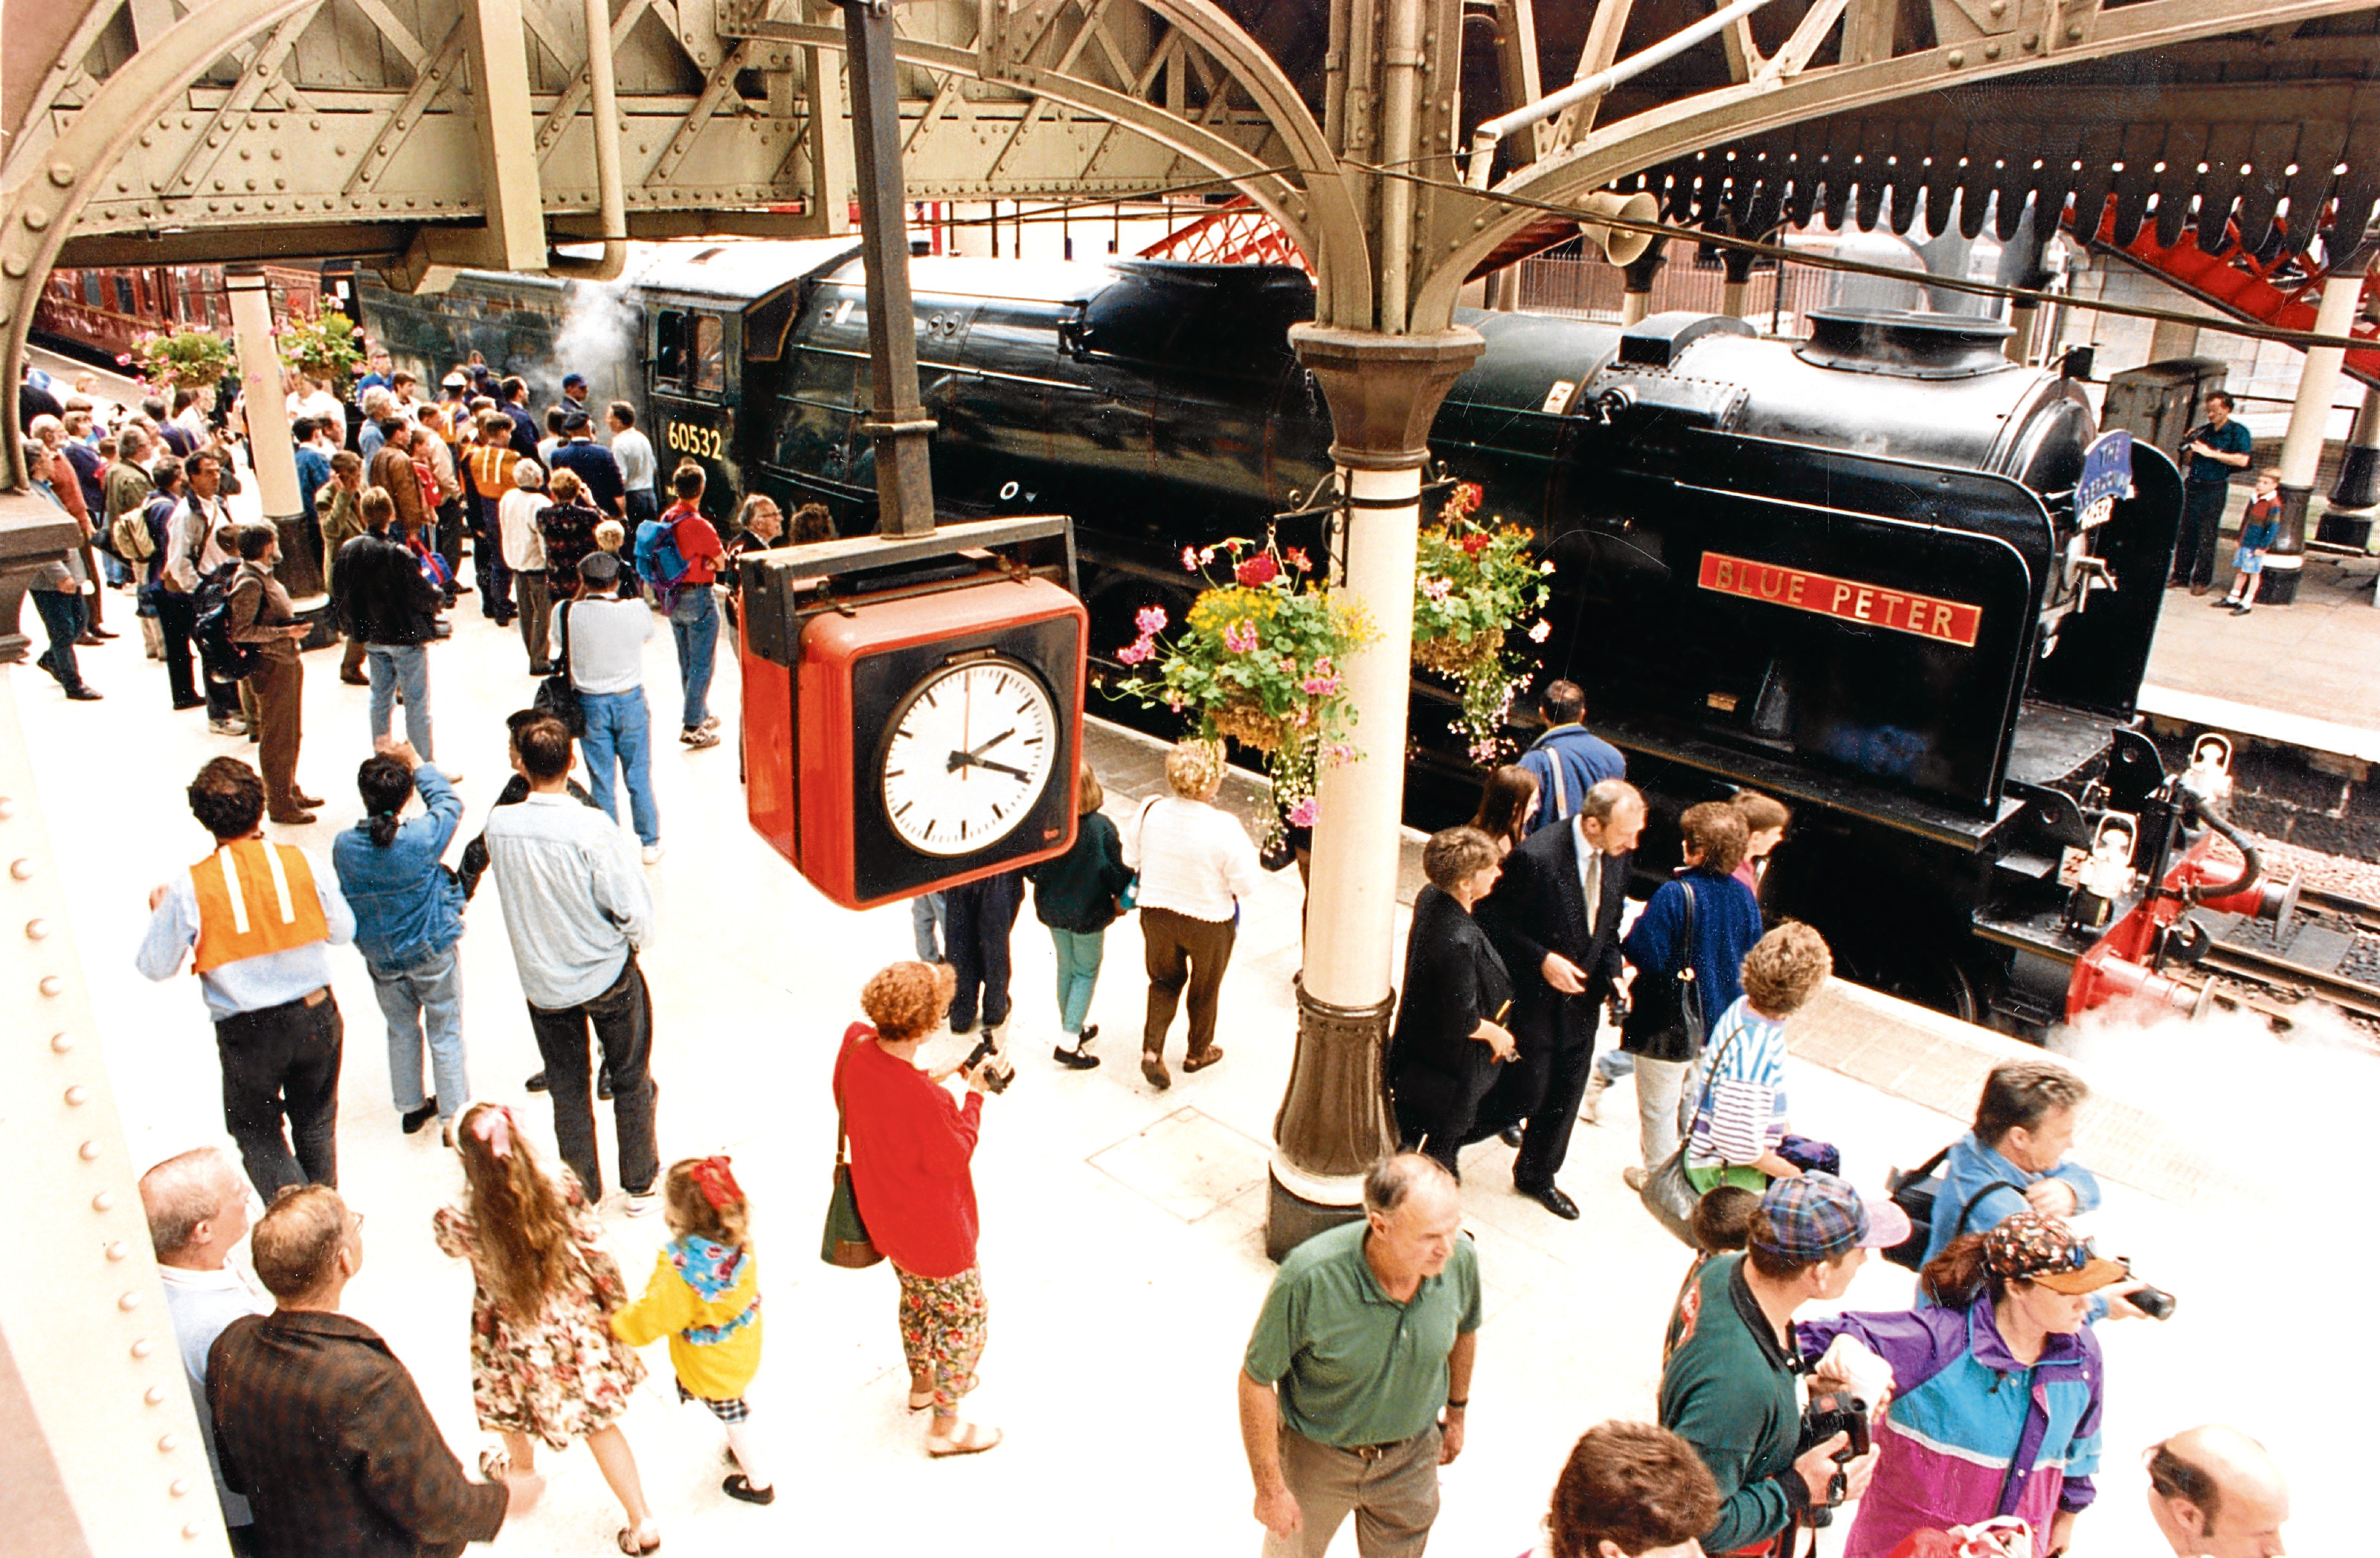 The Blue Peter steam train on a tour from Edinburgh to Aberdeen attracted much attention.